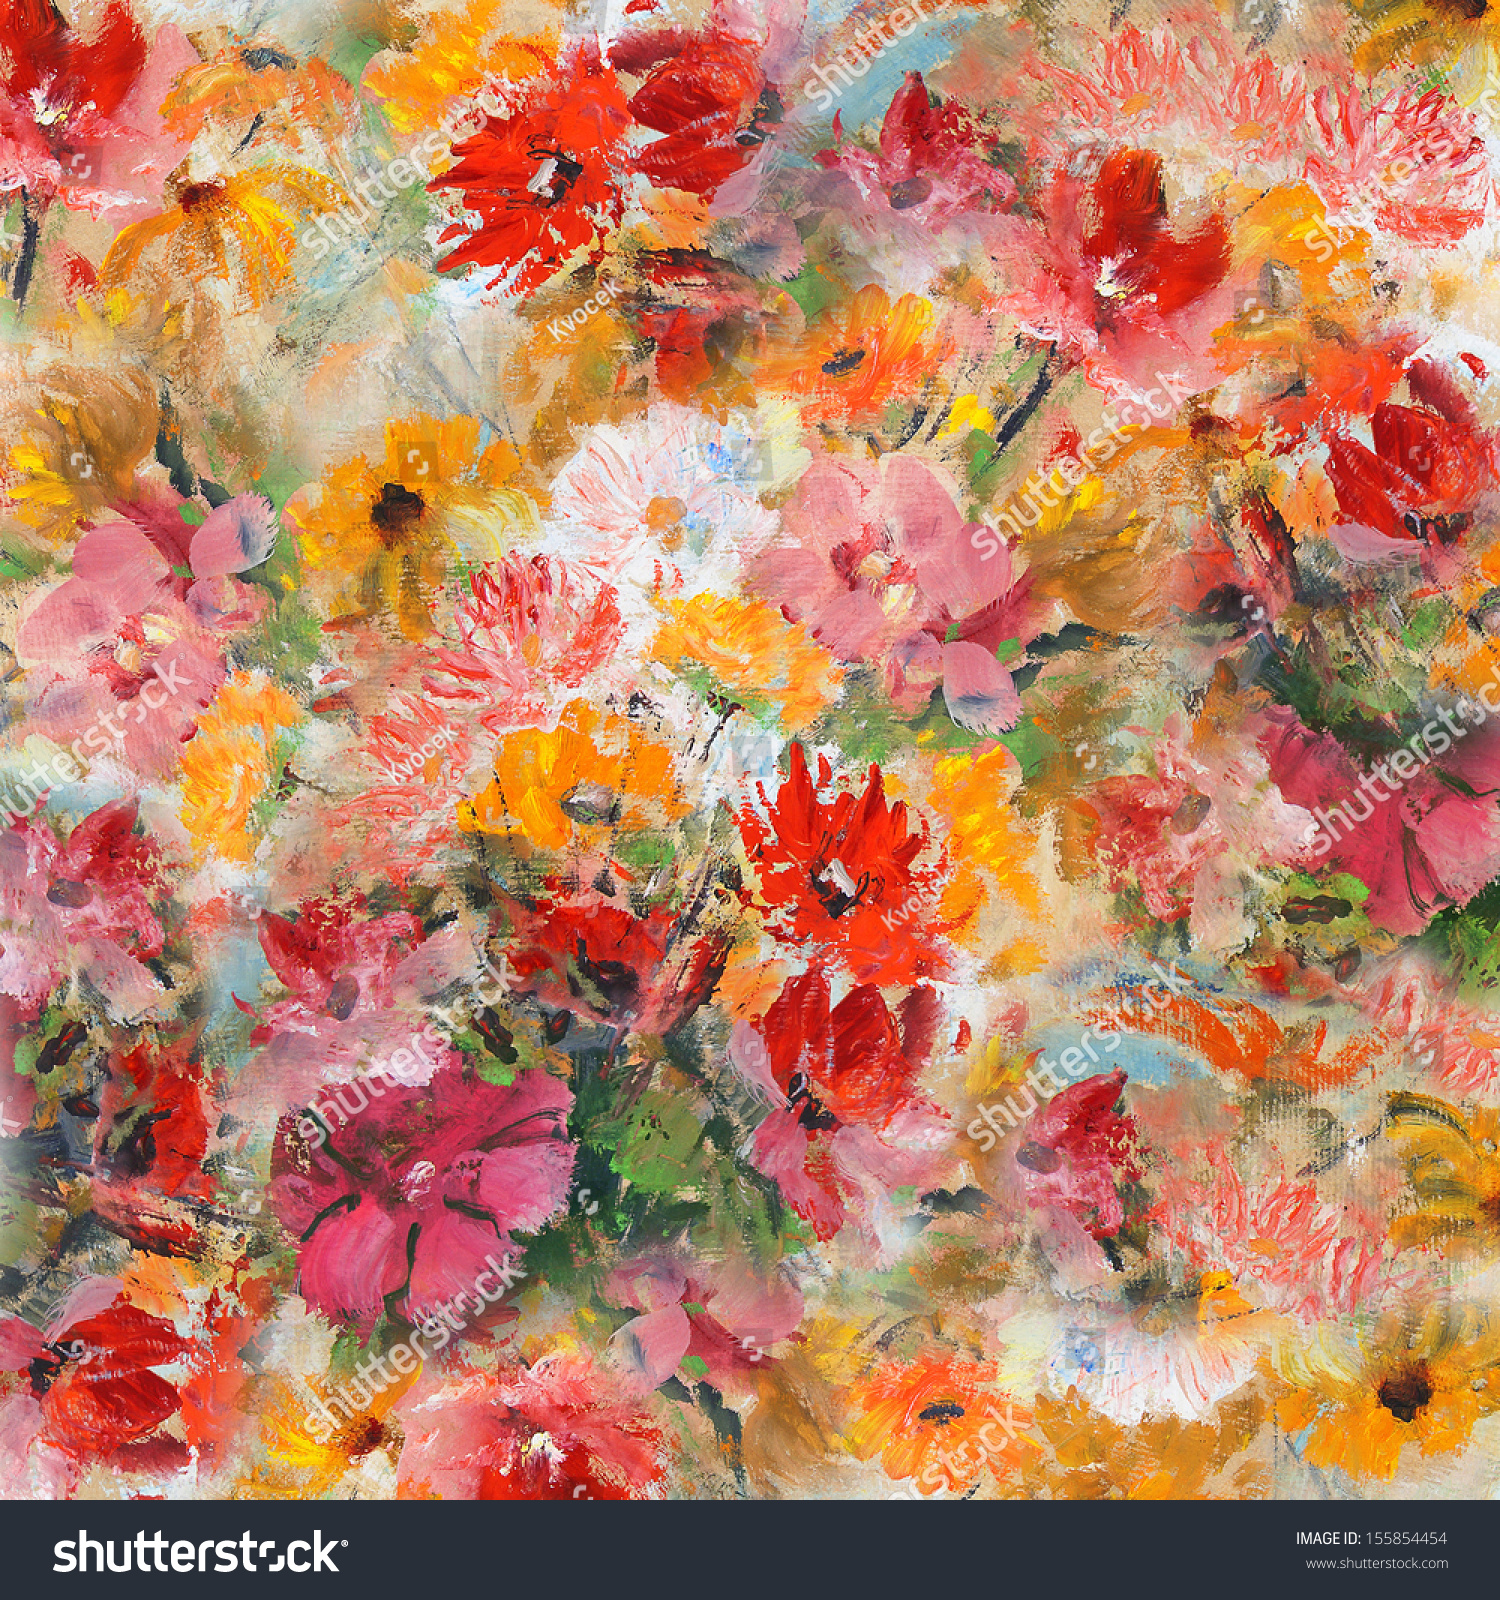 Still Life With Flowers Wallpaper Background Oil Painting